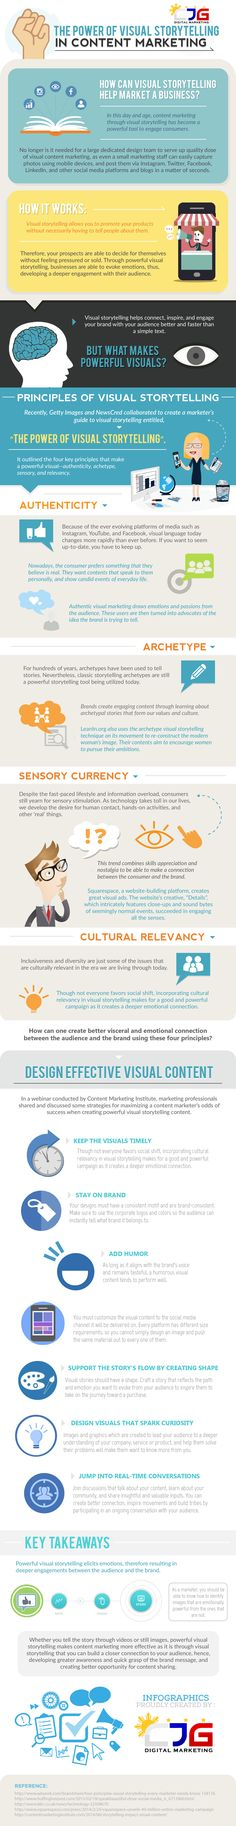 The-Power-of-Visual-Storytelling-in-Content-Marketing